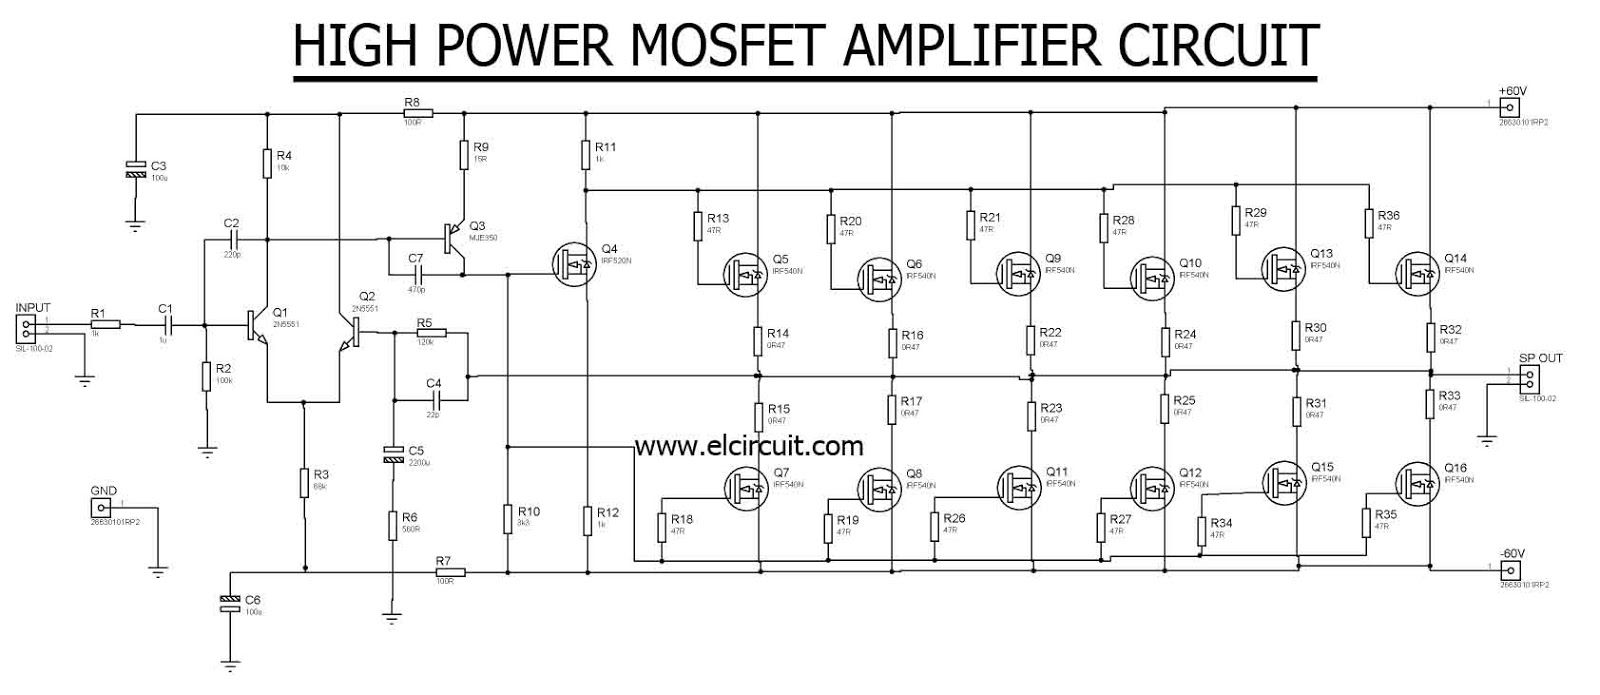 dj amplifier wiring diagram wiring diagram perfomance dj amp wiring diagram wiring diagram dj amplifier wiring [ 1600 x 695 Pixel ]